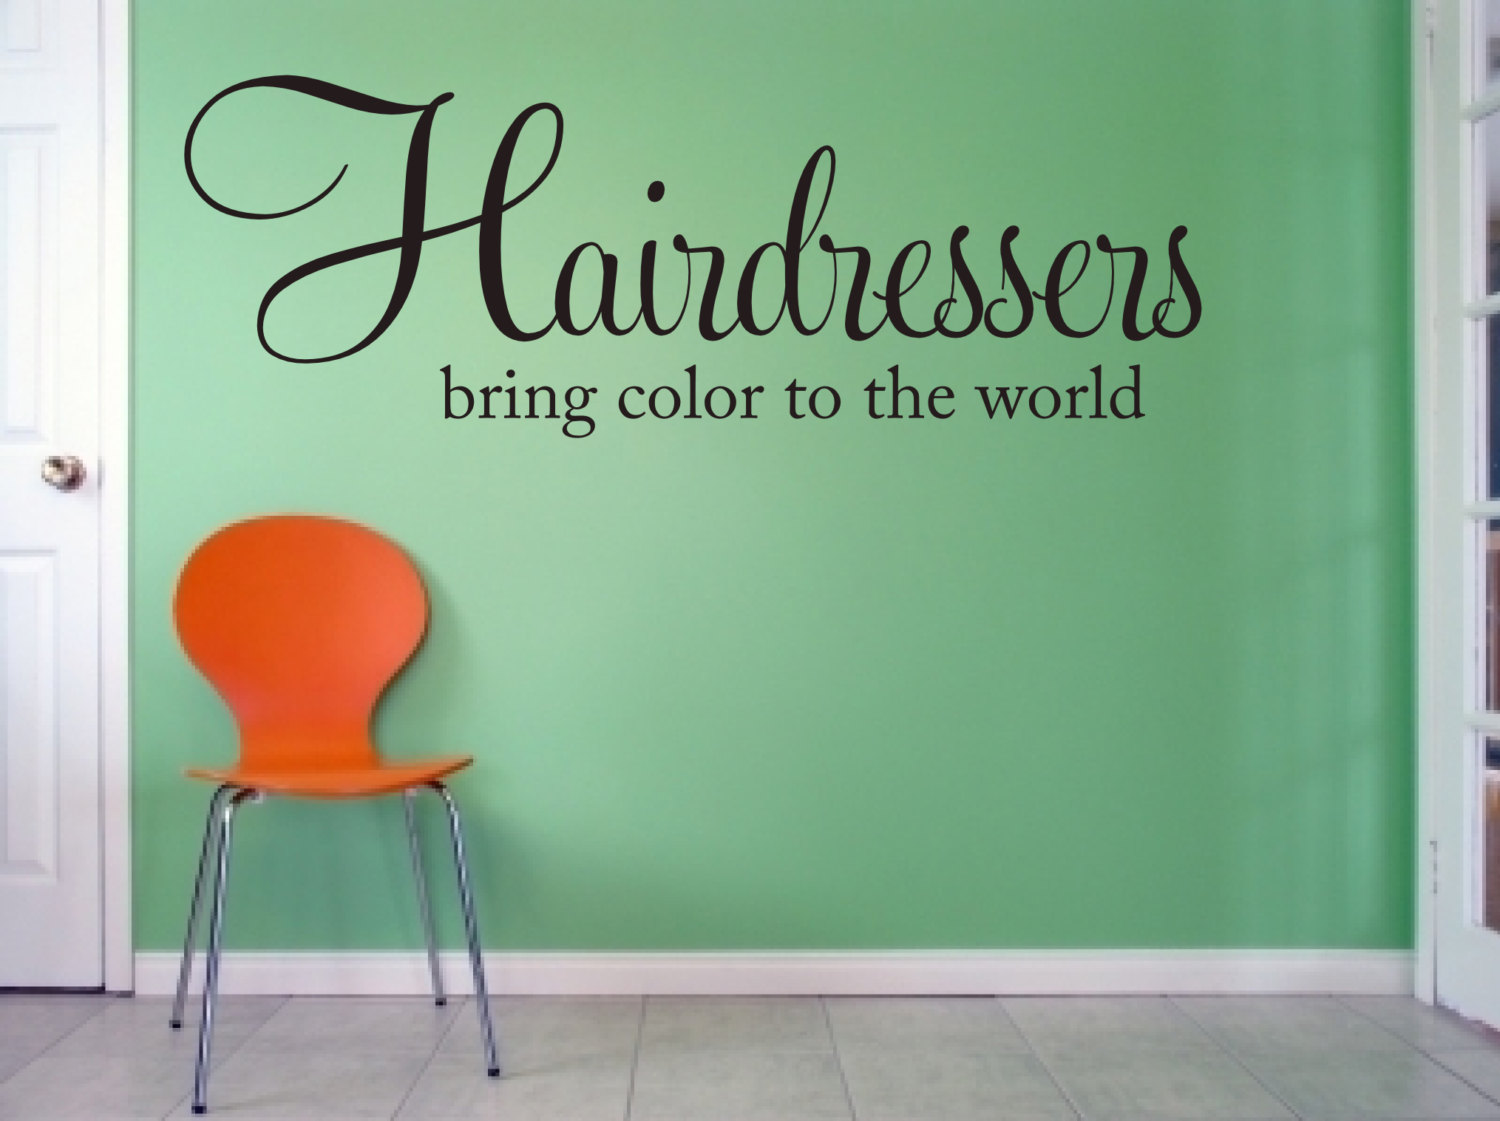 Quotes For Hair Spa: Change Quotes For Hair Color. QuotesGram